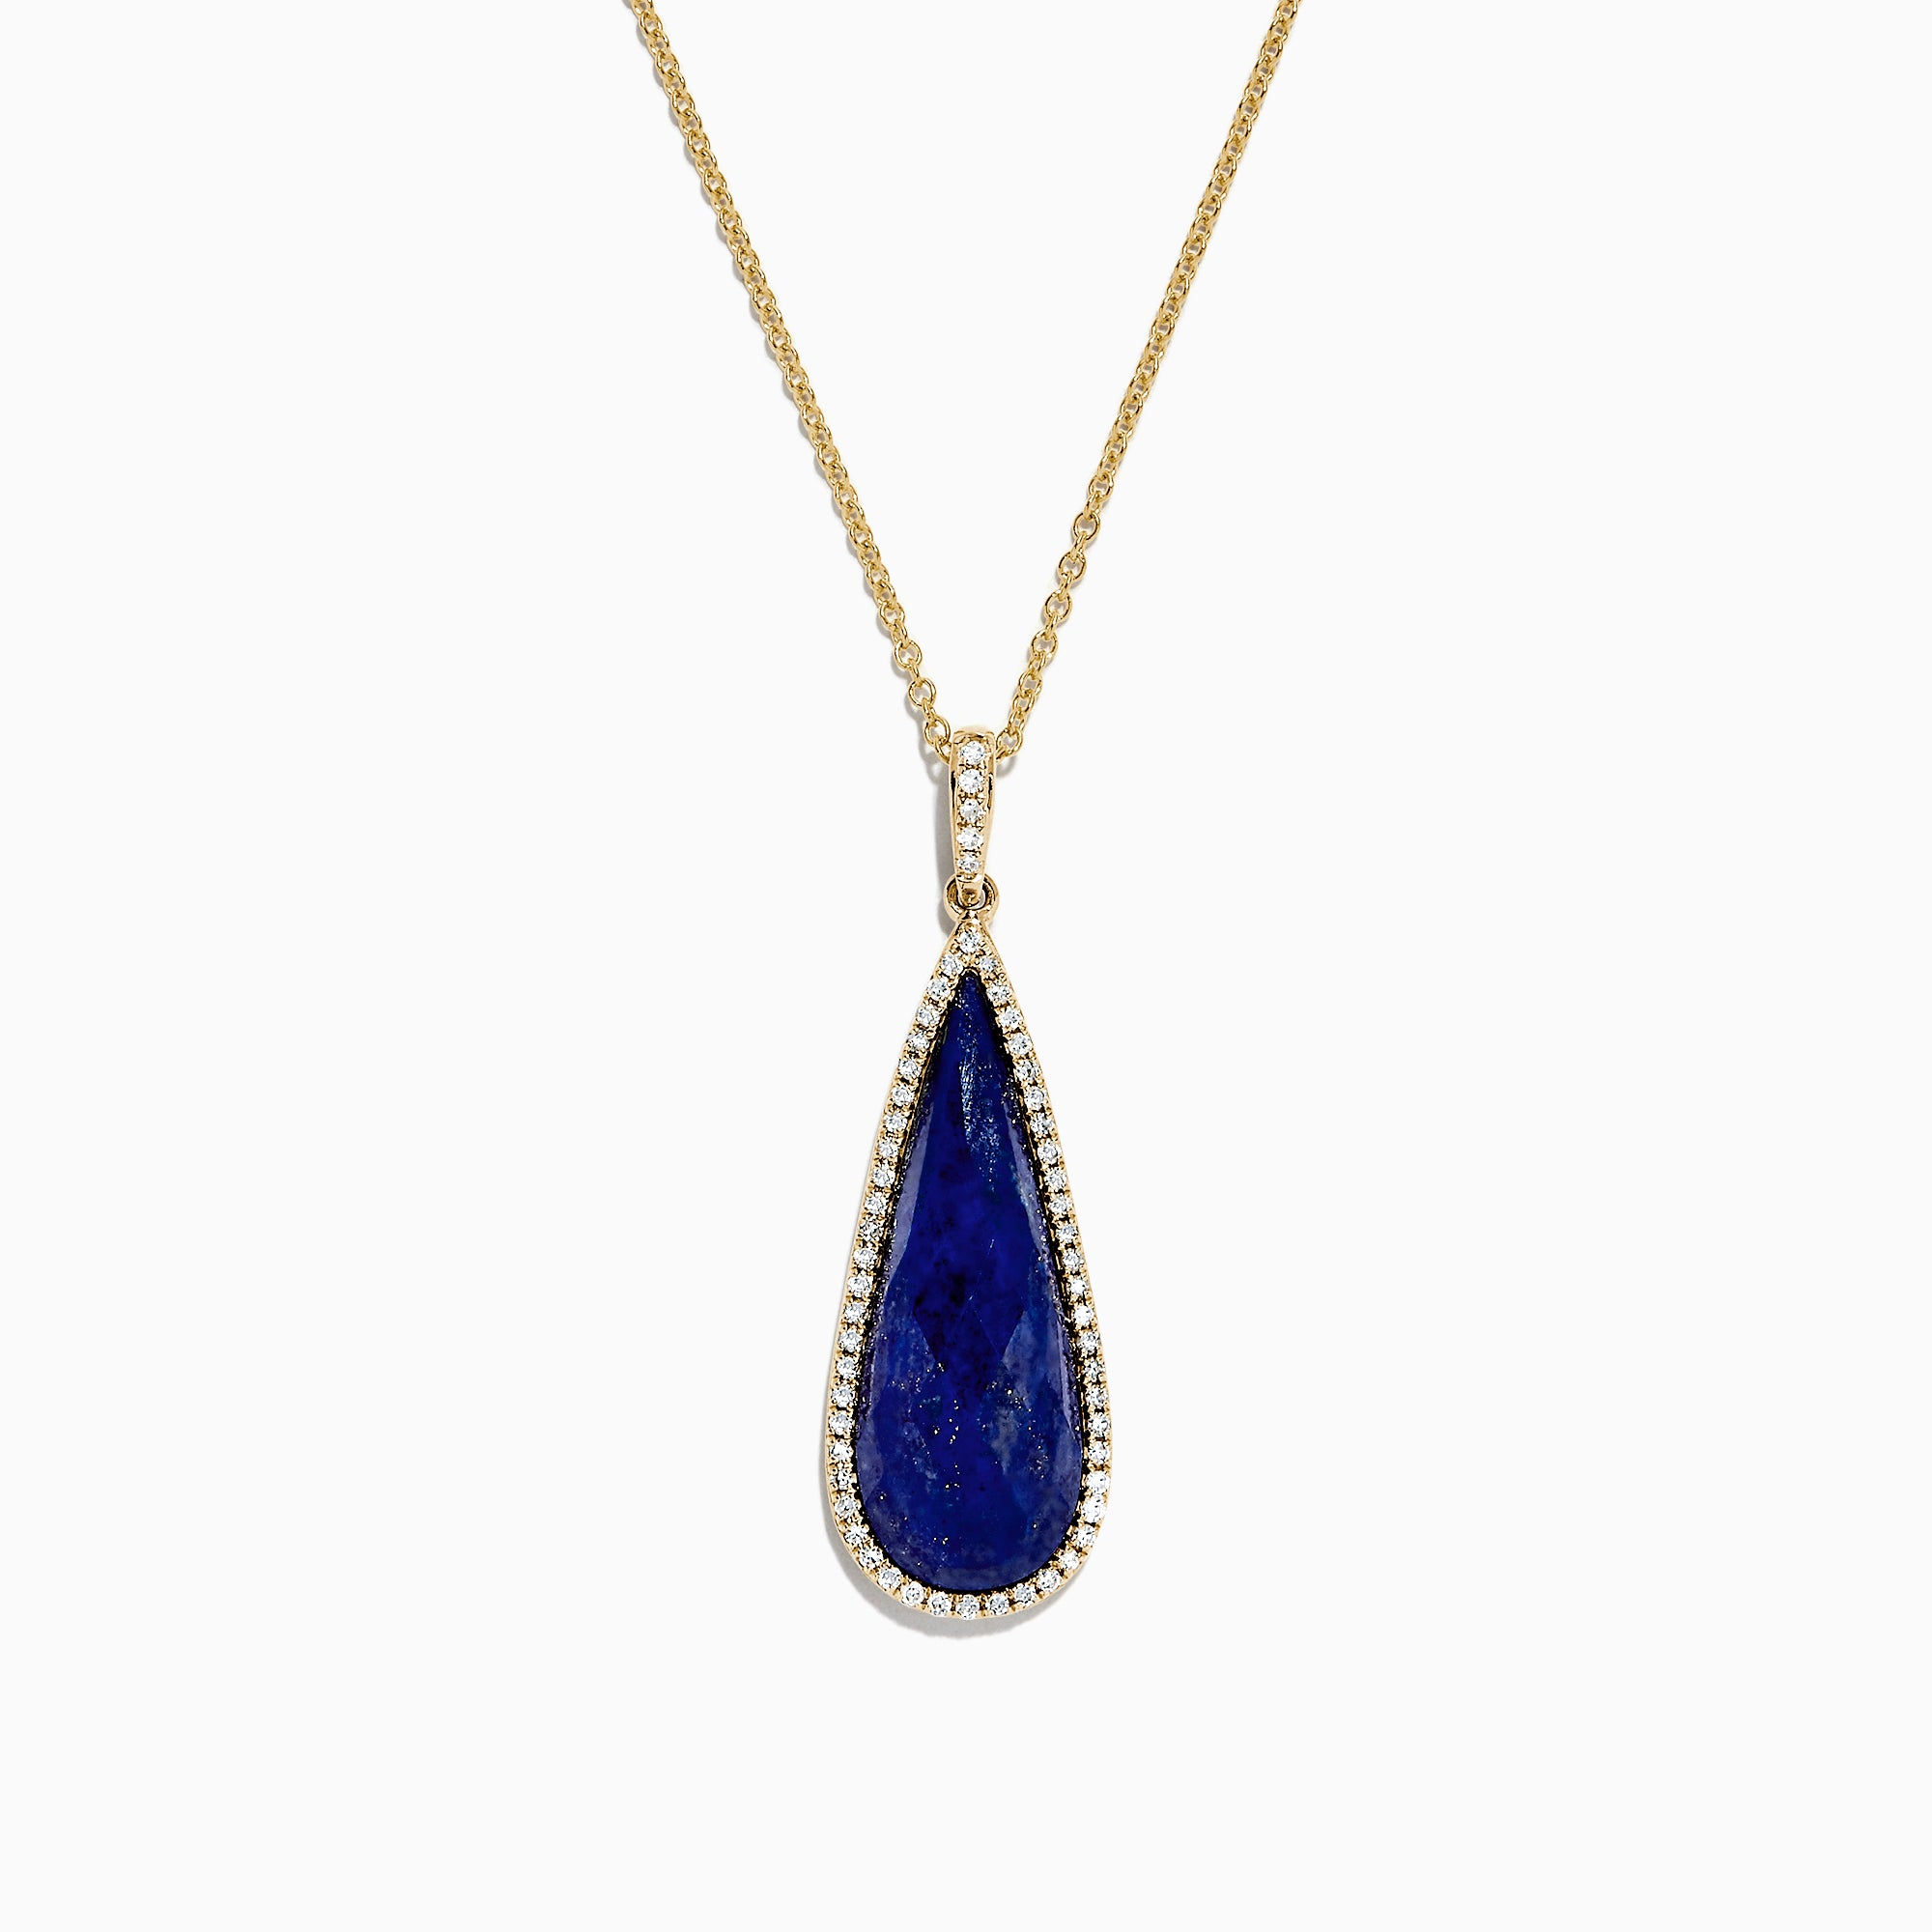 Effy 14K Yellow Gold Lapis Laziuli and Diamond Drop Pendant, 13.45 TCW